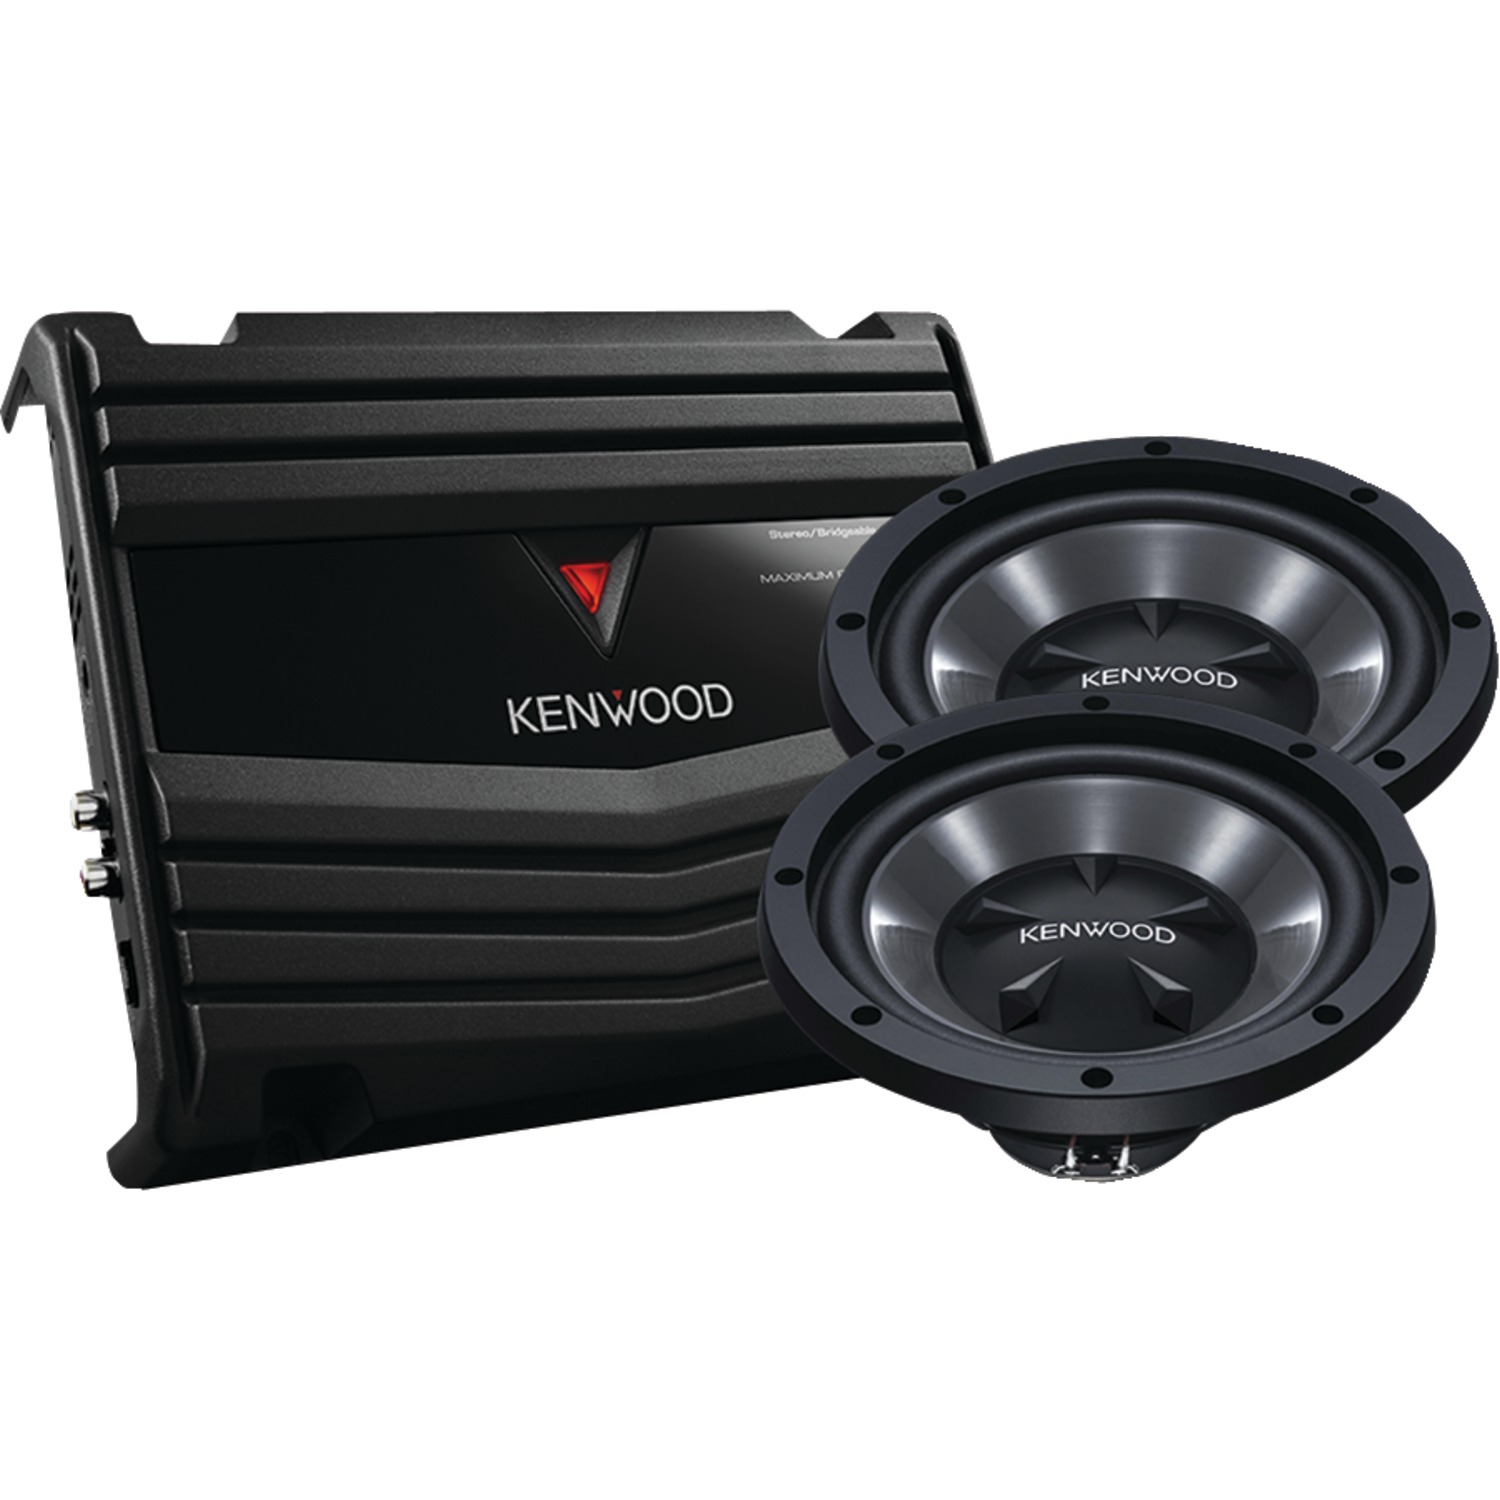 hight resolution of kenwood p w1220 12 quot 350 watt bass party pack home powered subwoofer wiring diagram subwoofer and amp installation diagram